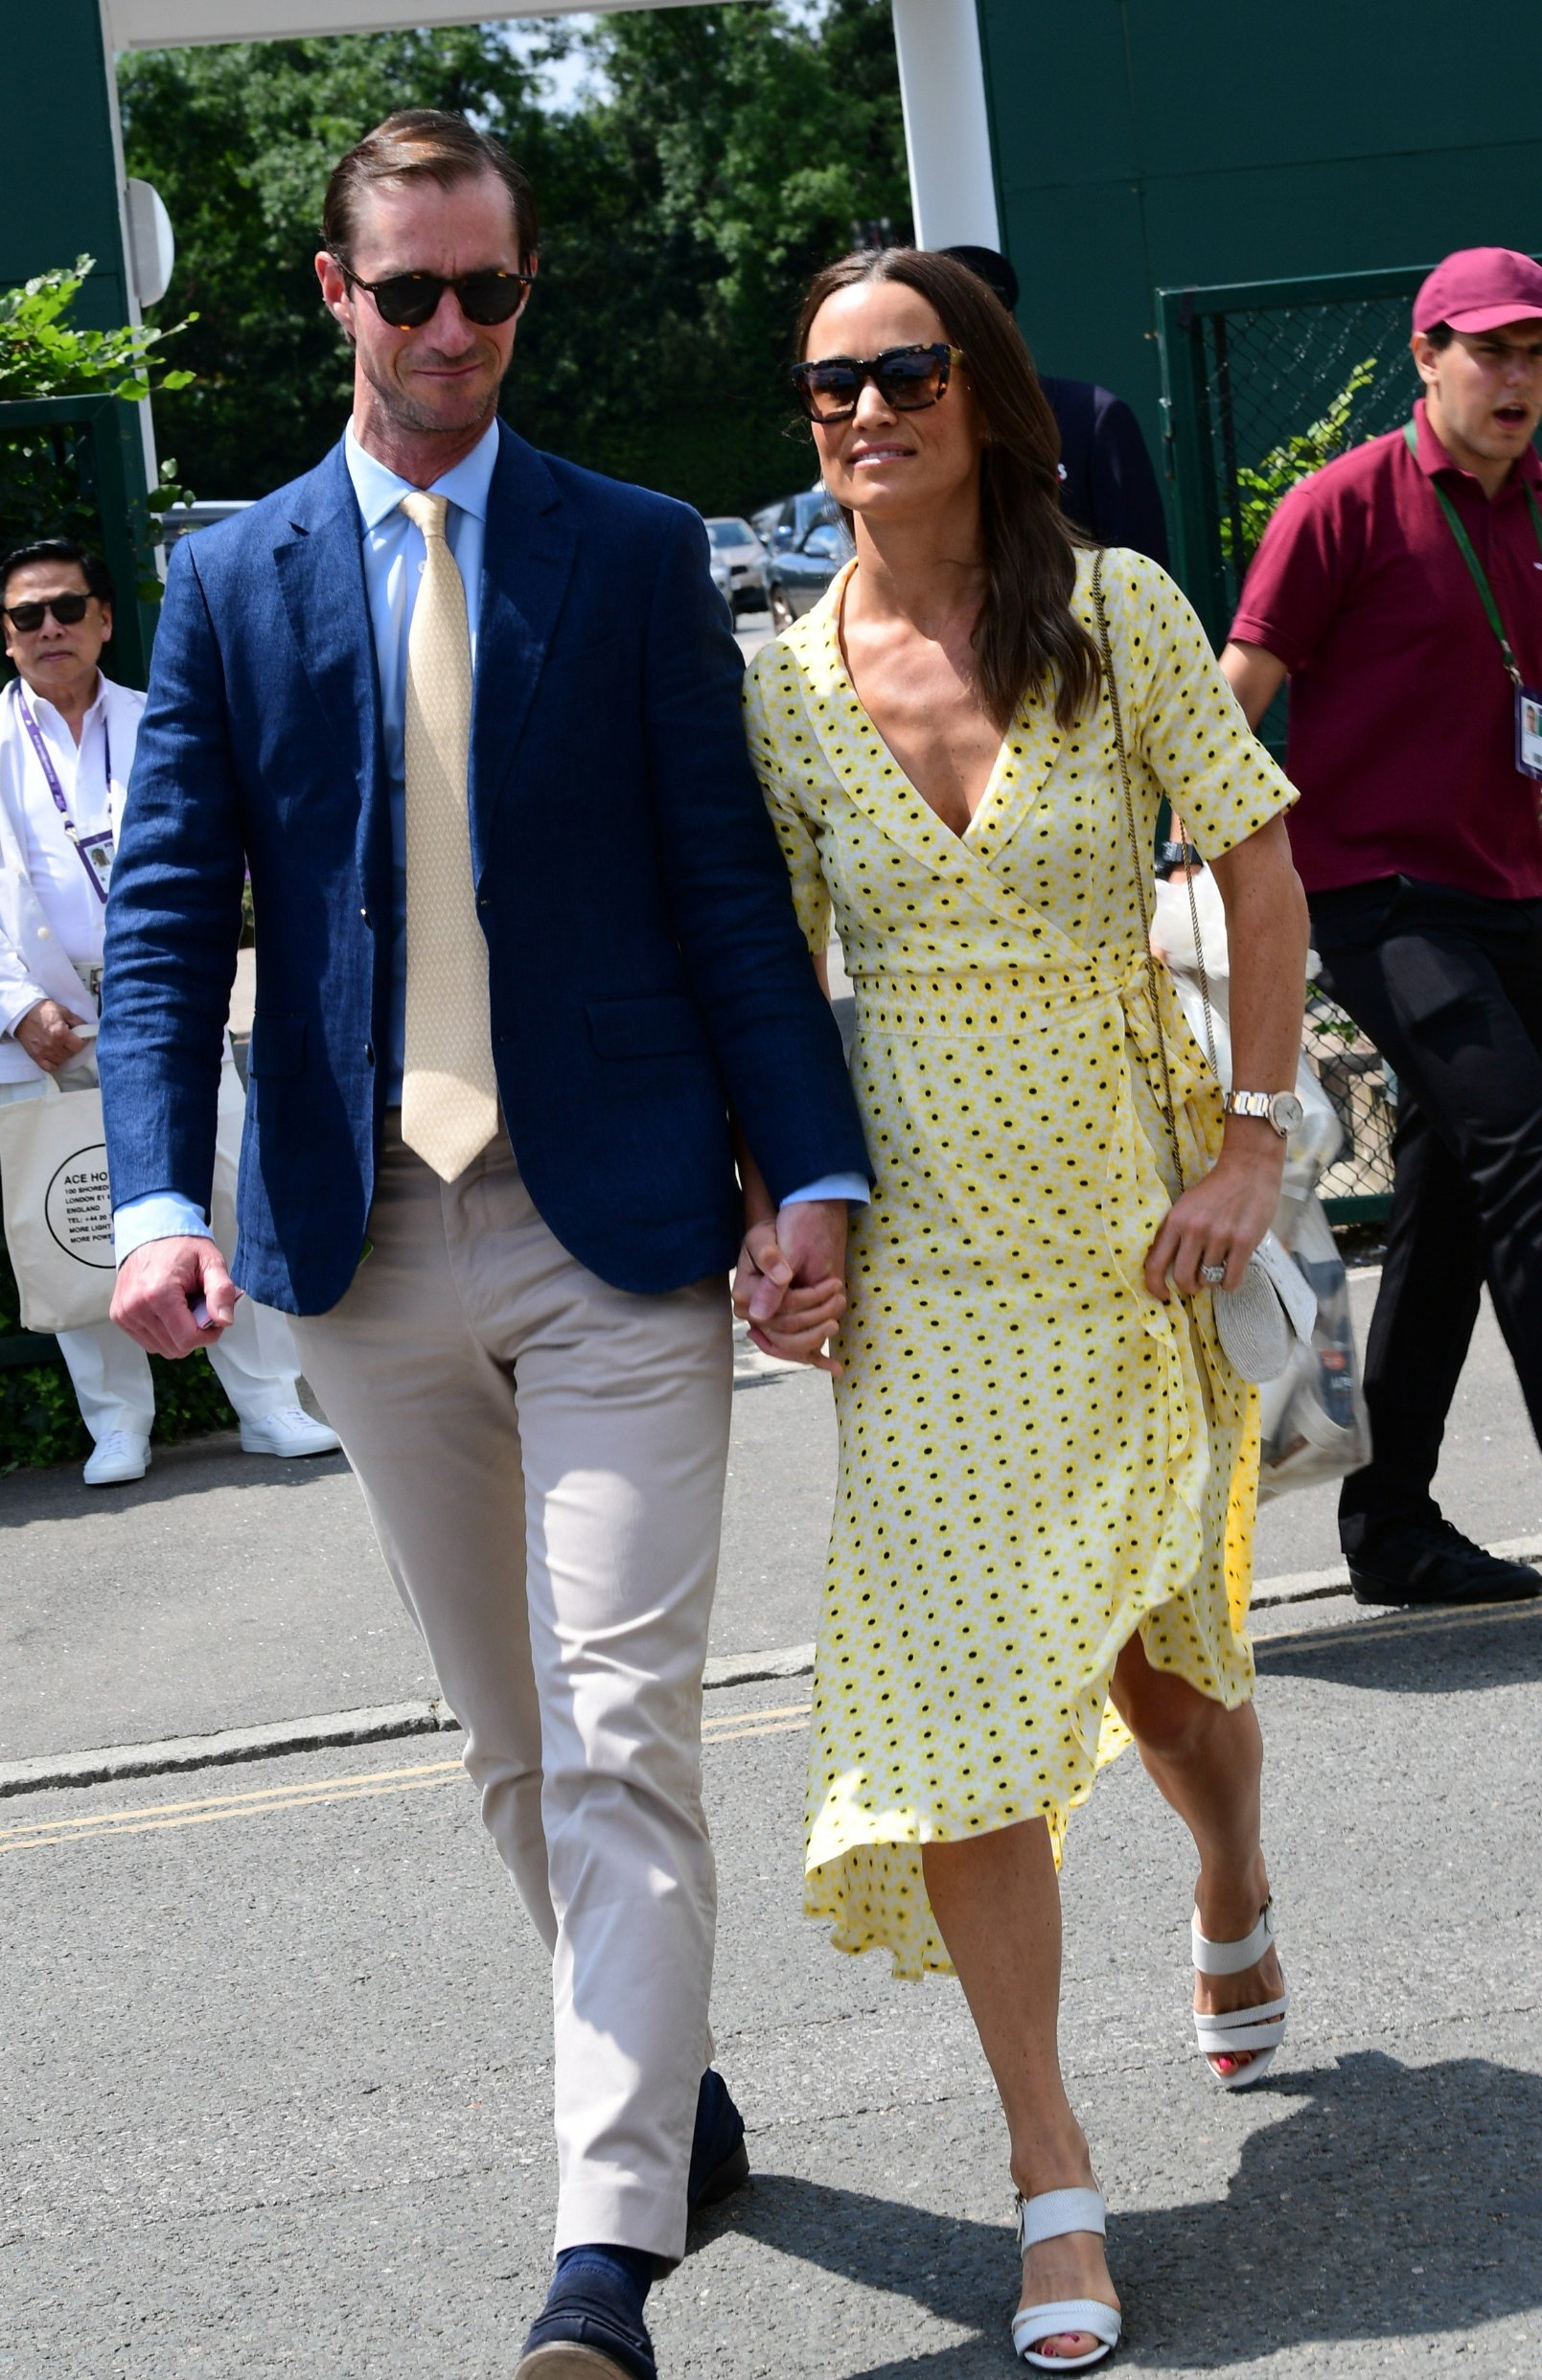 12 July 2019.  Pippa Middleton & James Matthews arrive at wimbledon Tennis   Pictured: Pippa Middleton, James Matthews, Image: 457881260, License: Rights-managed, Restrictions: , Model Release: no, Credit line: Profimedia, Goff Photos